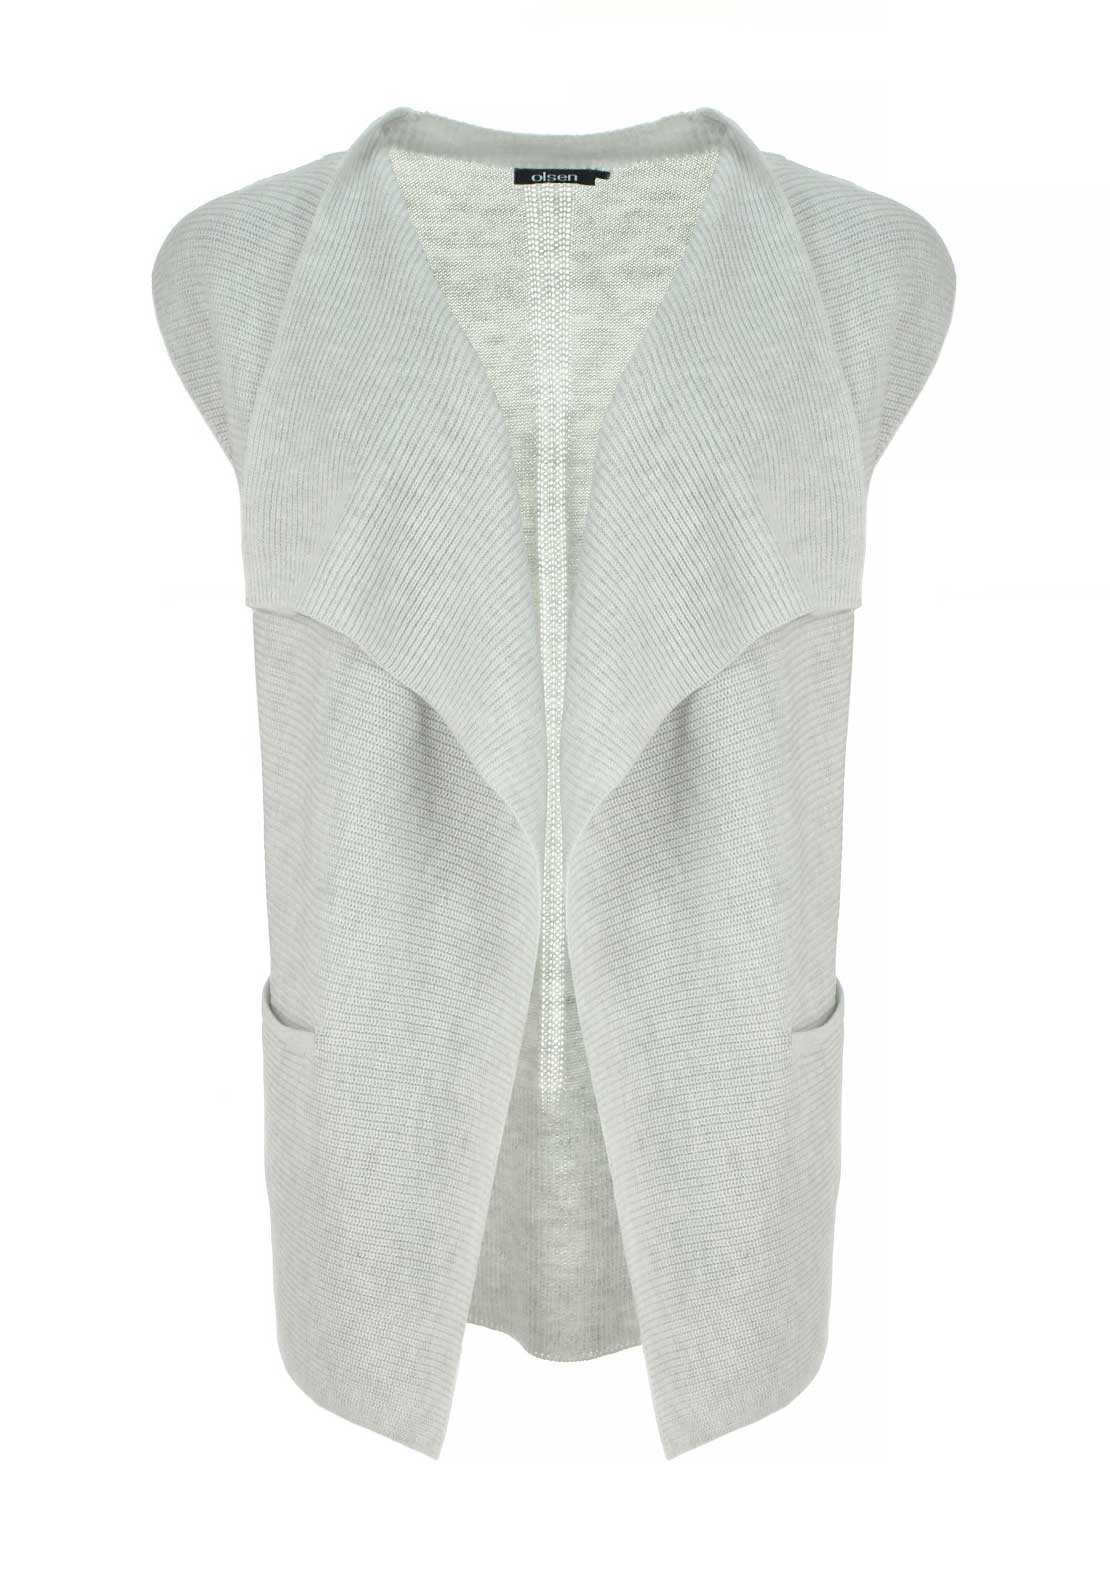 Olsen Chunky Knit Sleeveless Cardigan, Light Grey